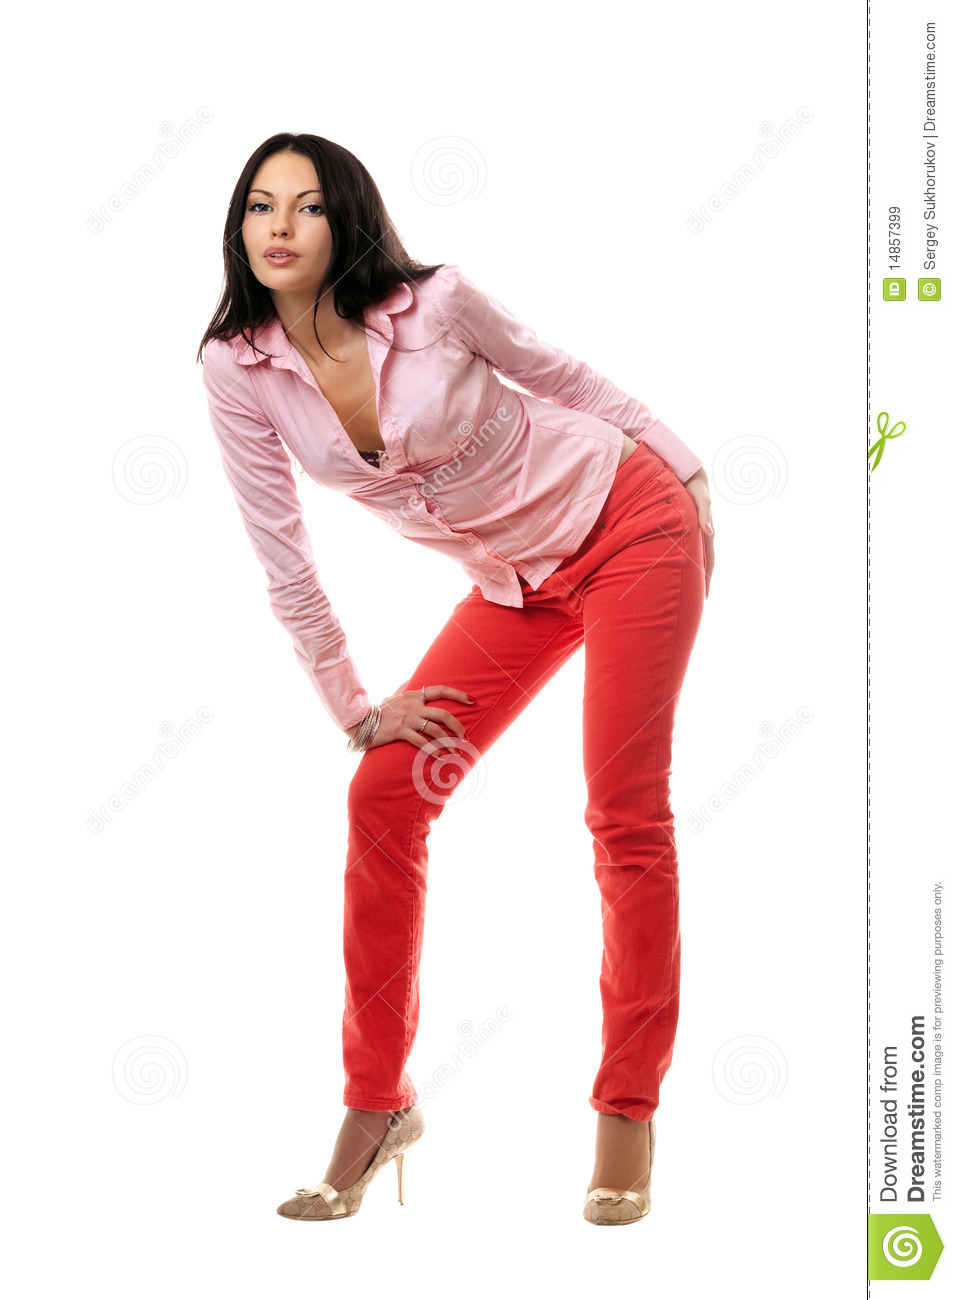 Playful young brunette in red jeans